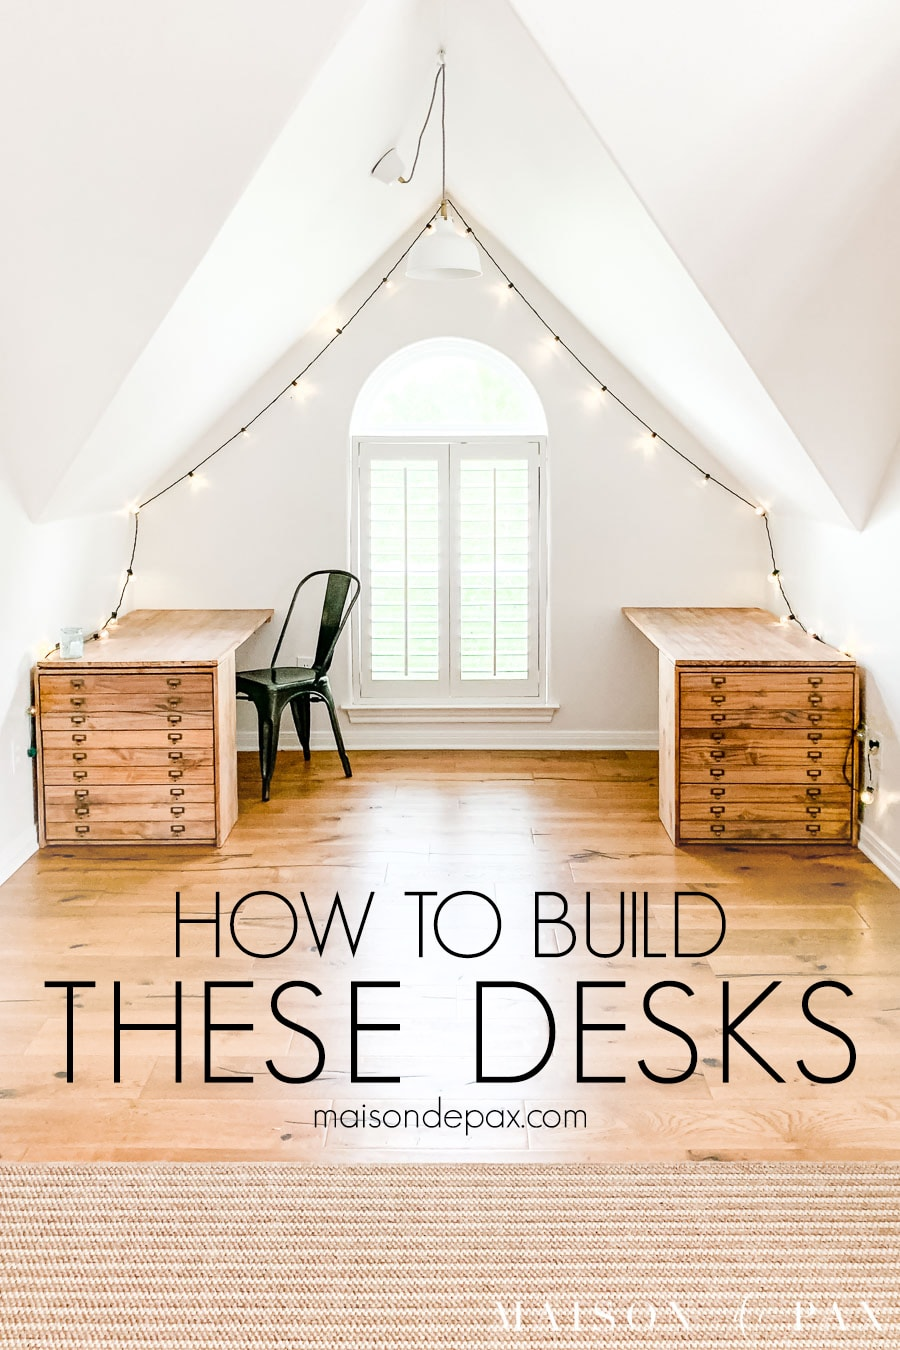 cute wood desks with drawers in window nook with overlay: how to build these desks | Maison de Pax